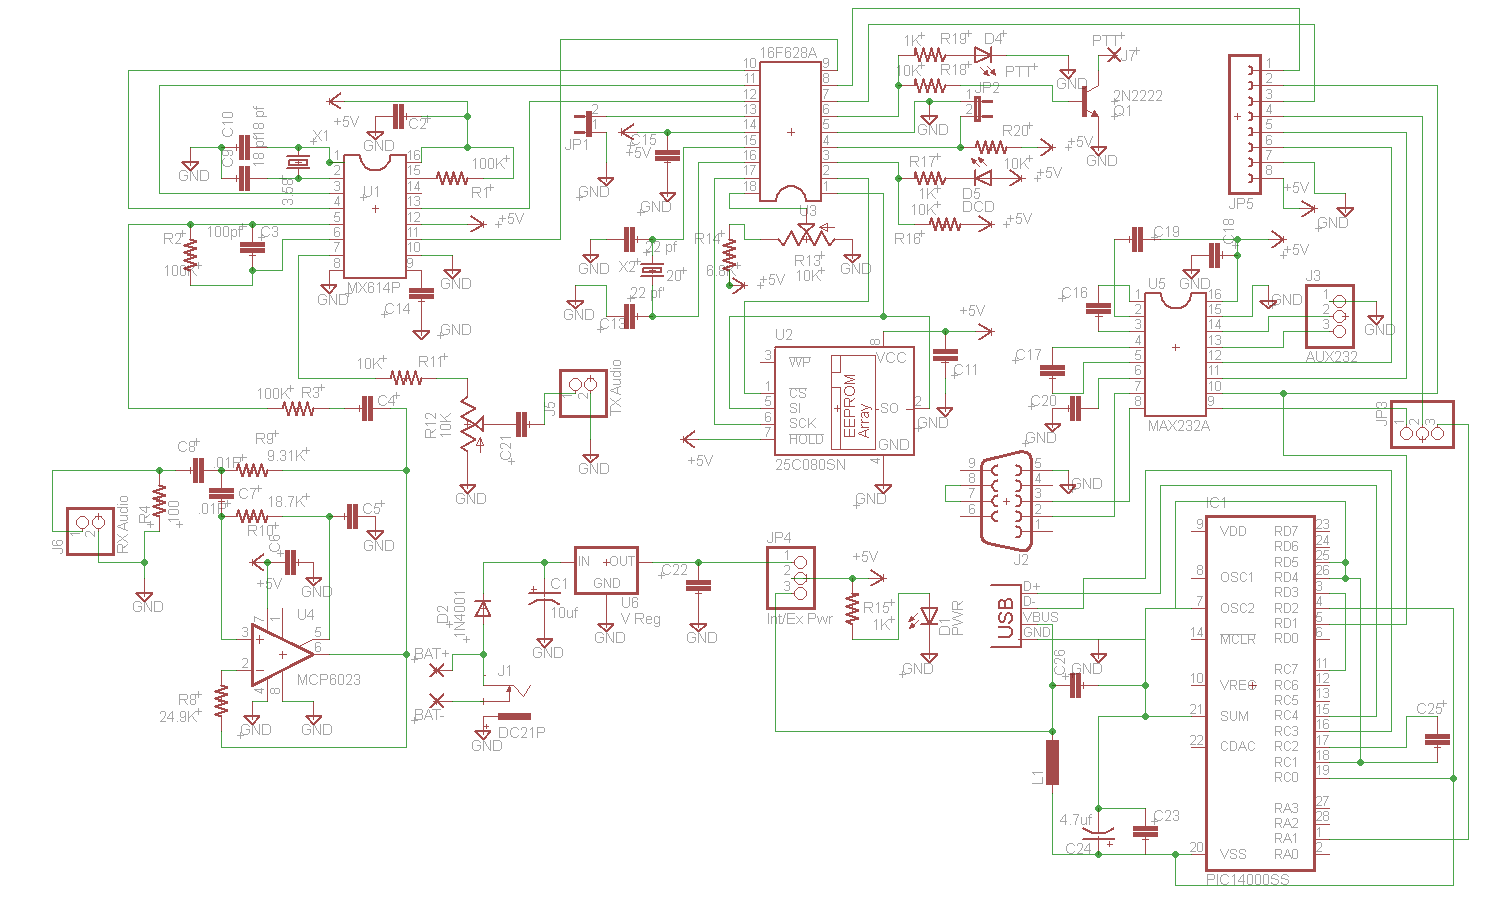 E B A B besides Mx P M Schematic together with  further Img Mda Px together with Default. on schematic